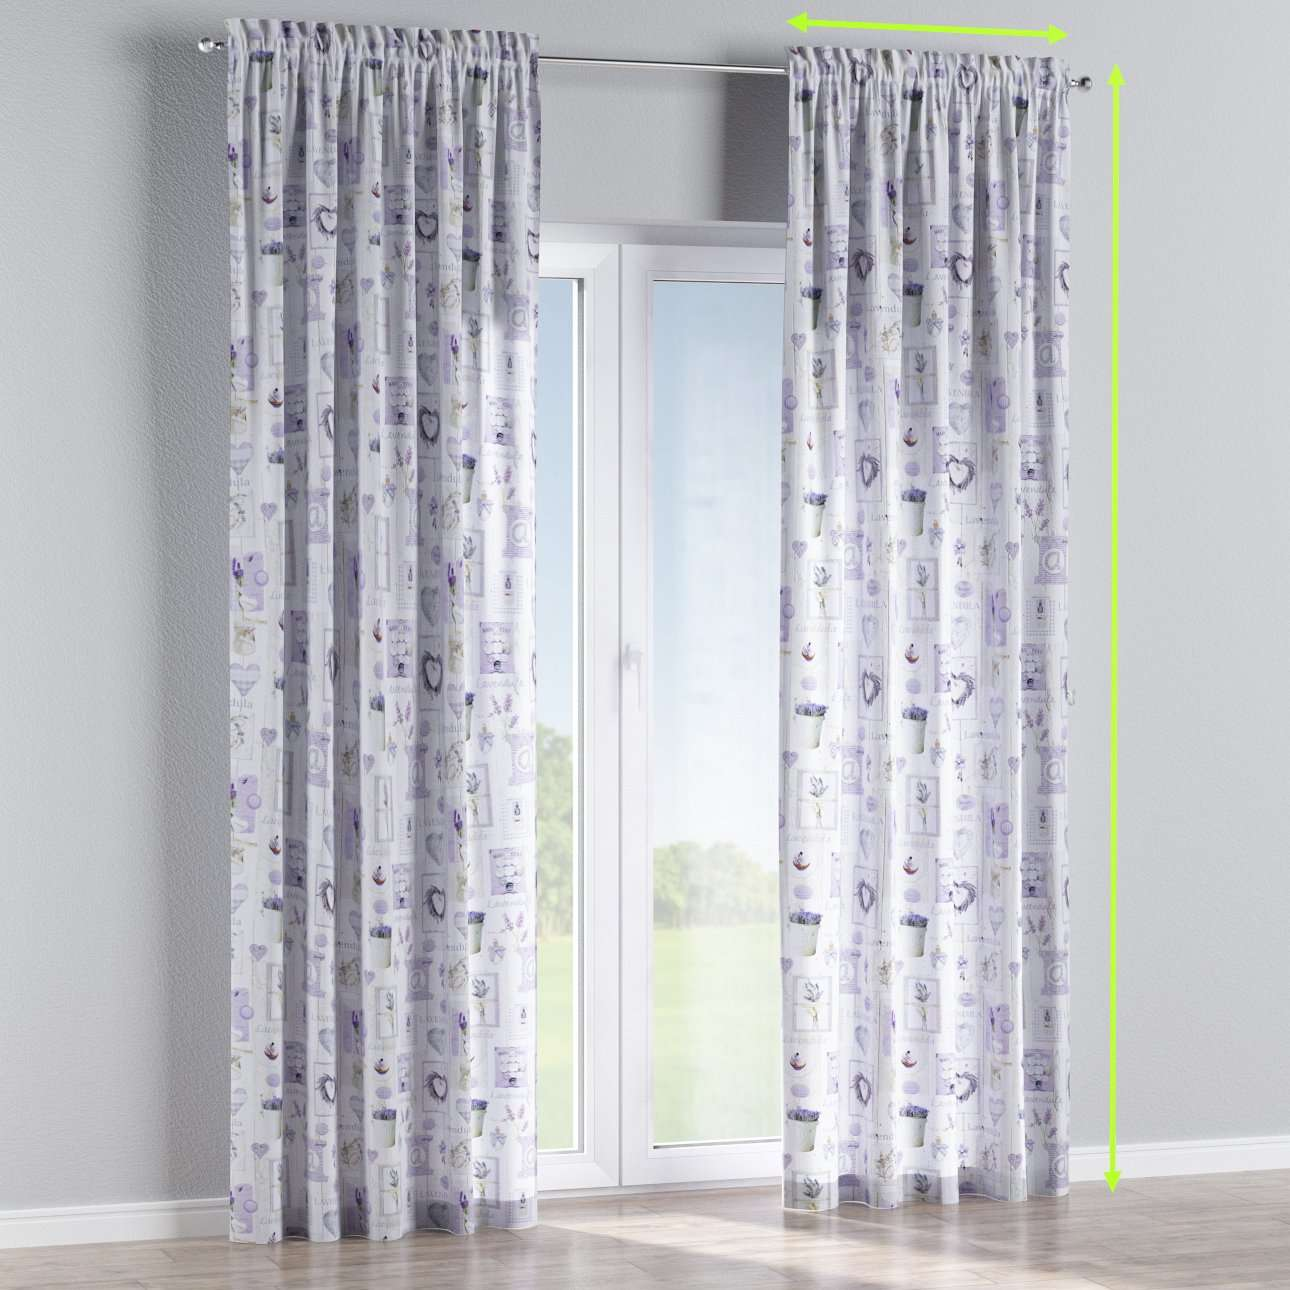 Slot and frill lined curtains in collection Ashley, fabric: 140-18